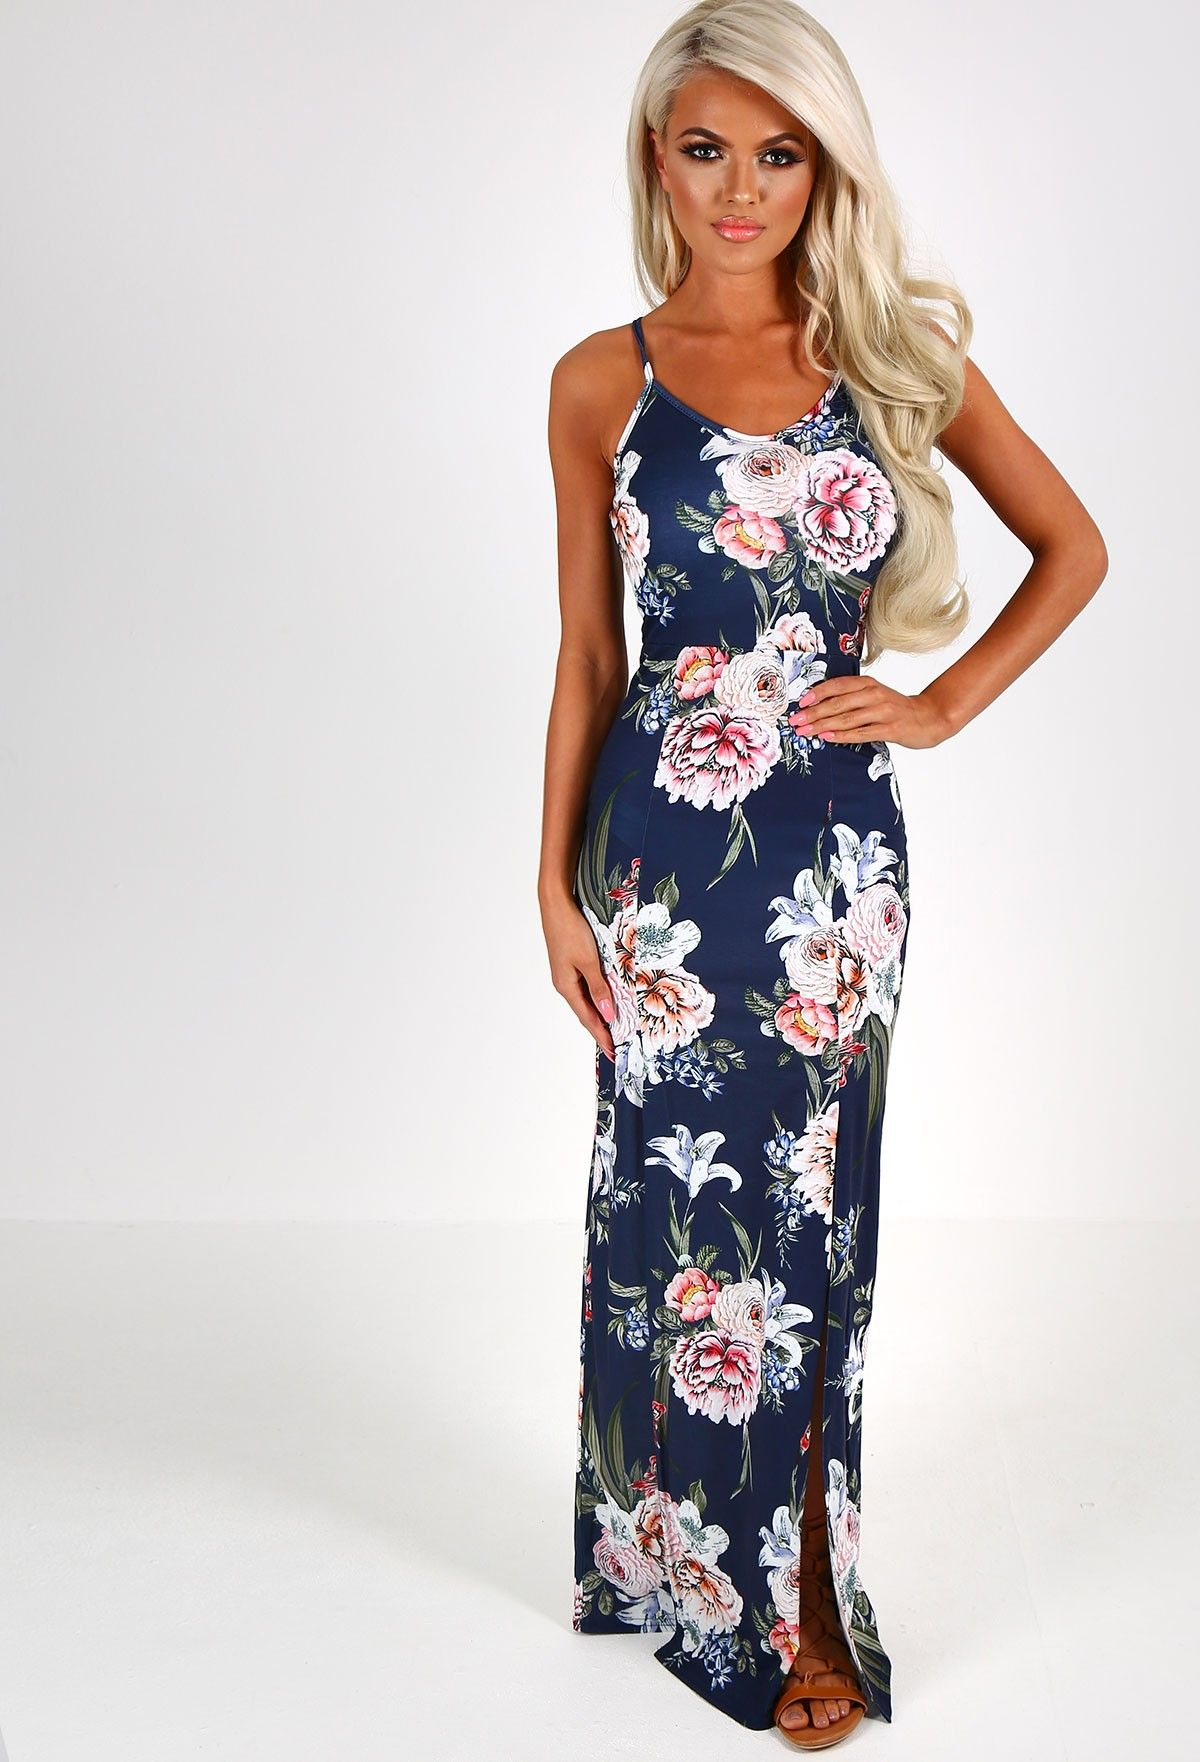 Summer occasion dresses uk next day delivery